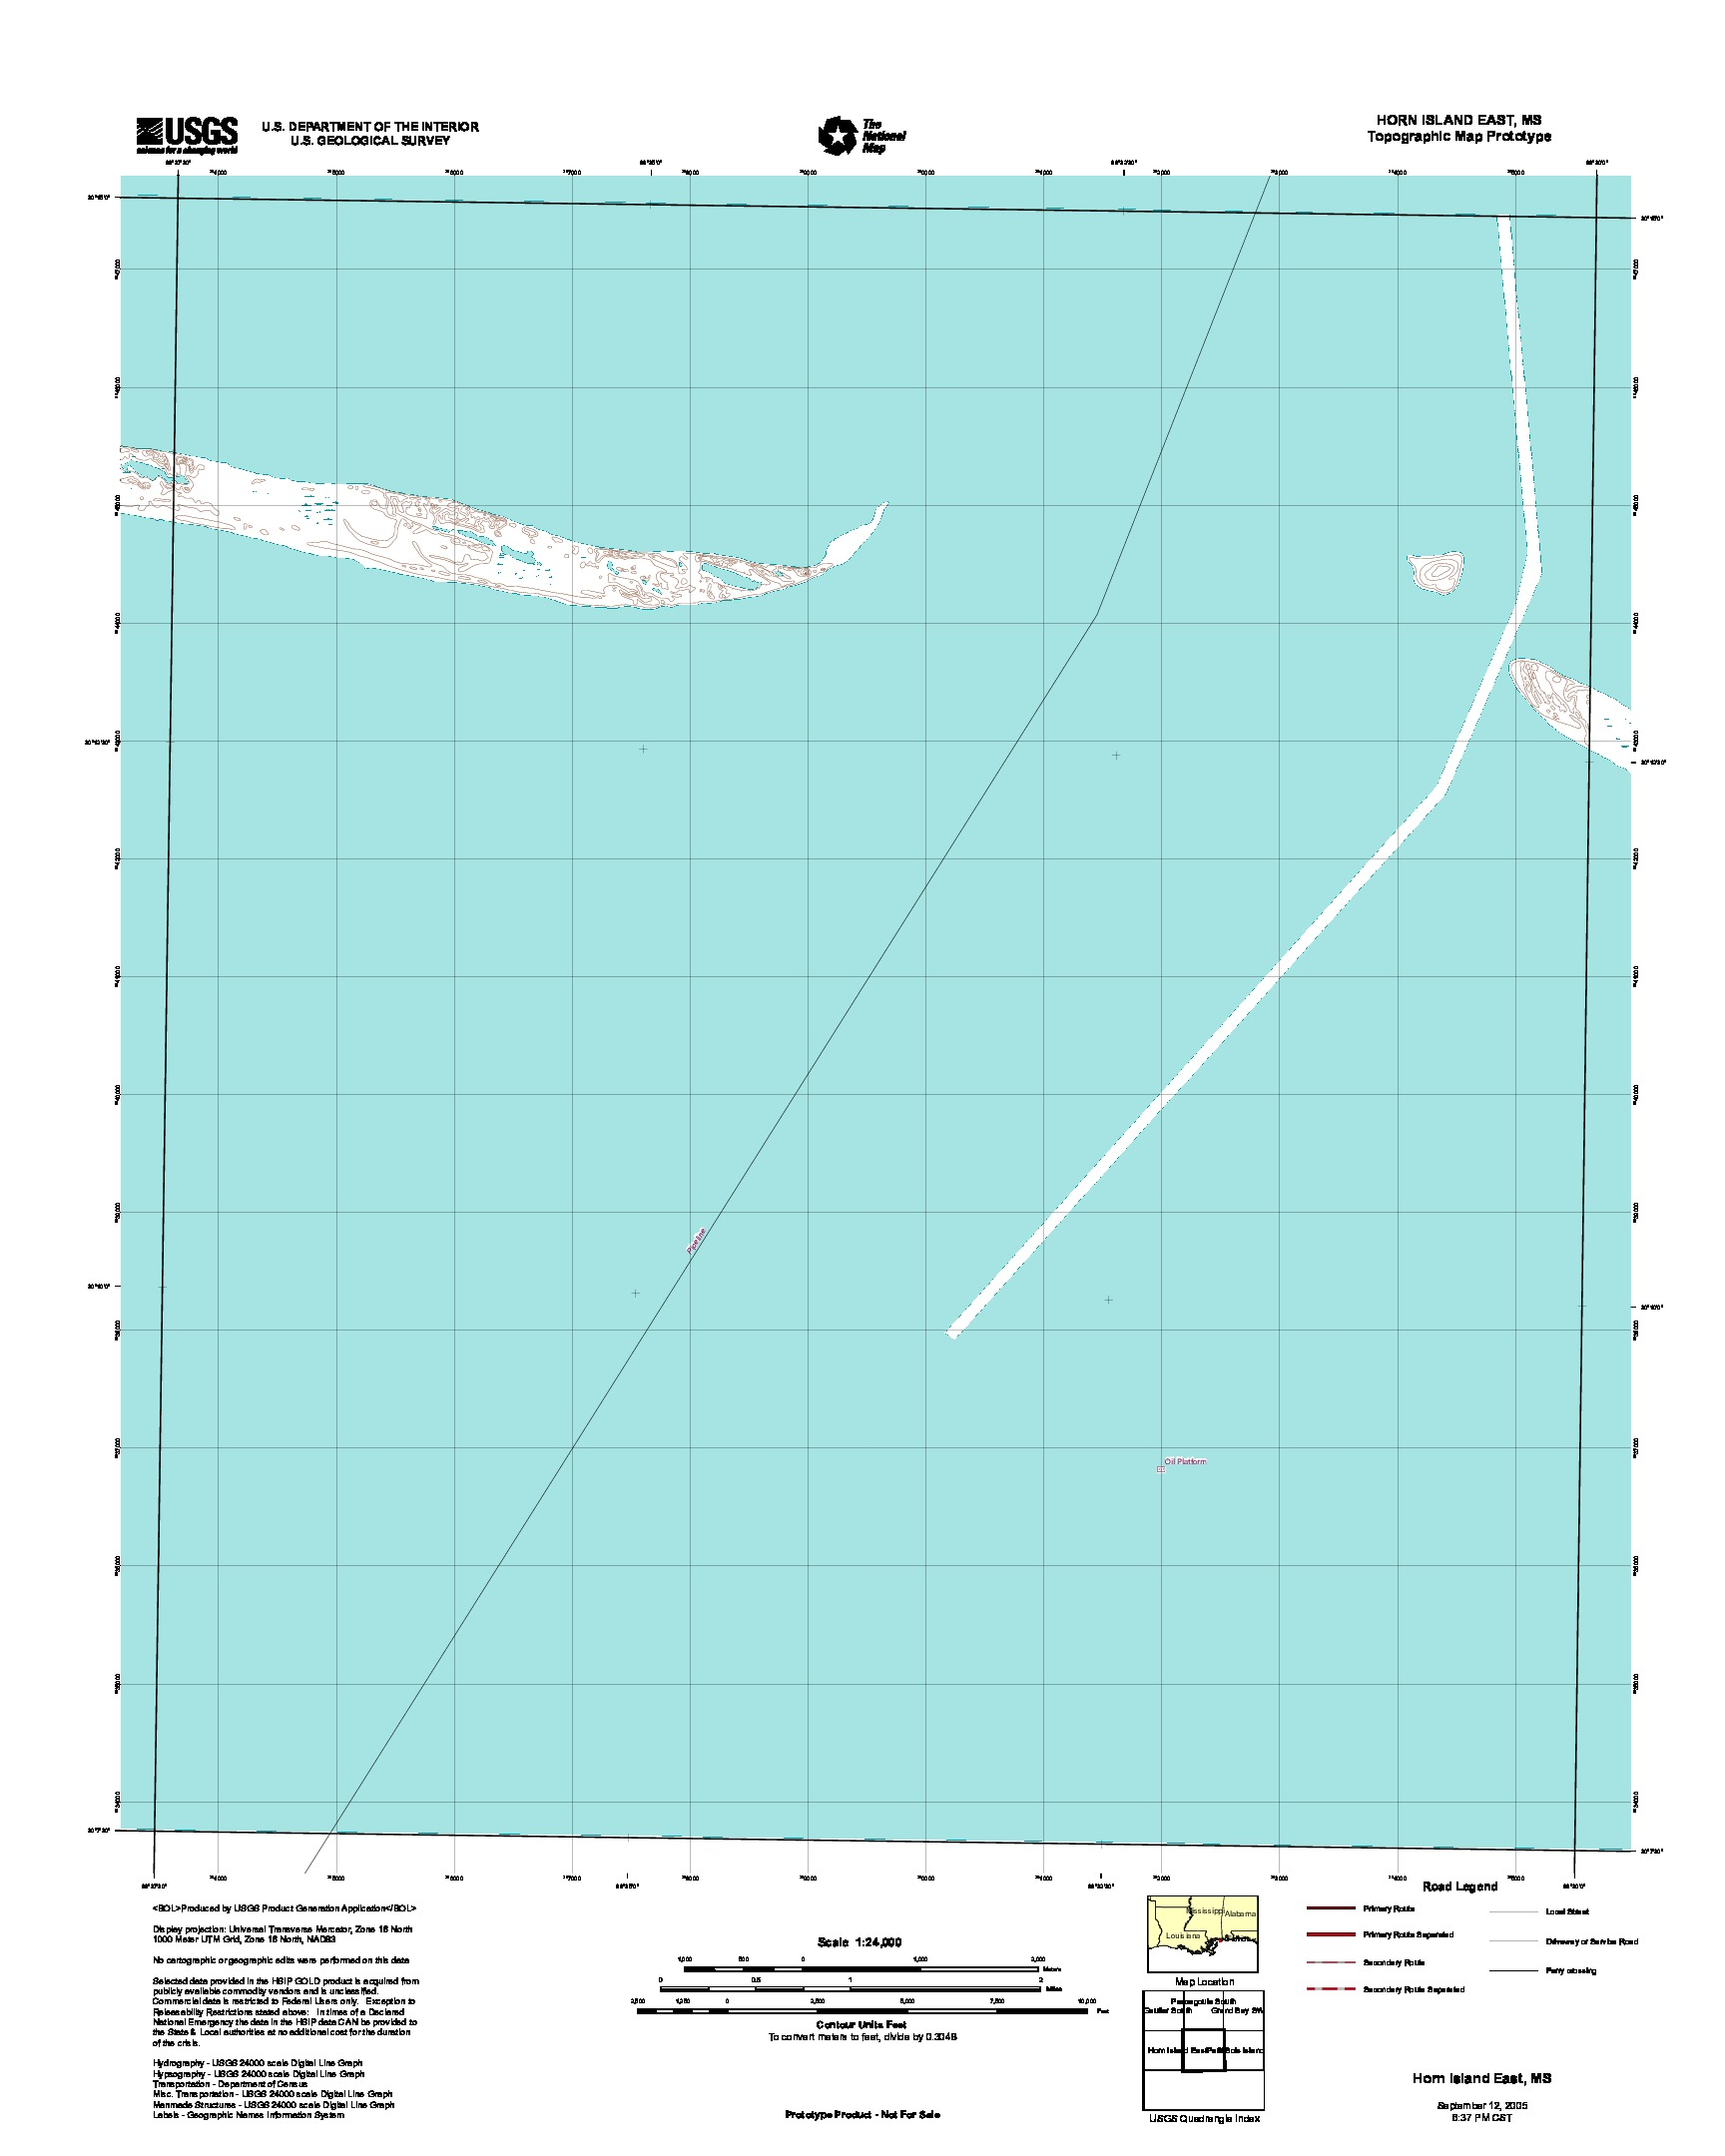 Horn Island East, Topographic Map Prototype, Mississippi, United States, September 12, 2005